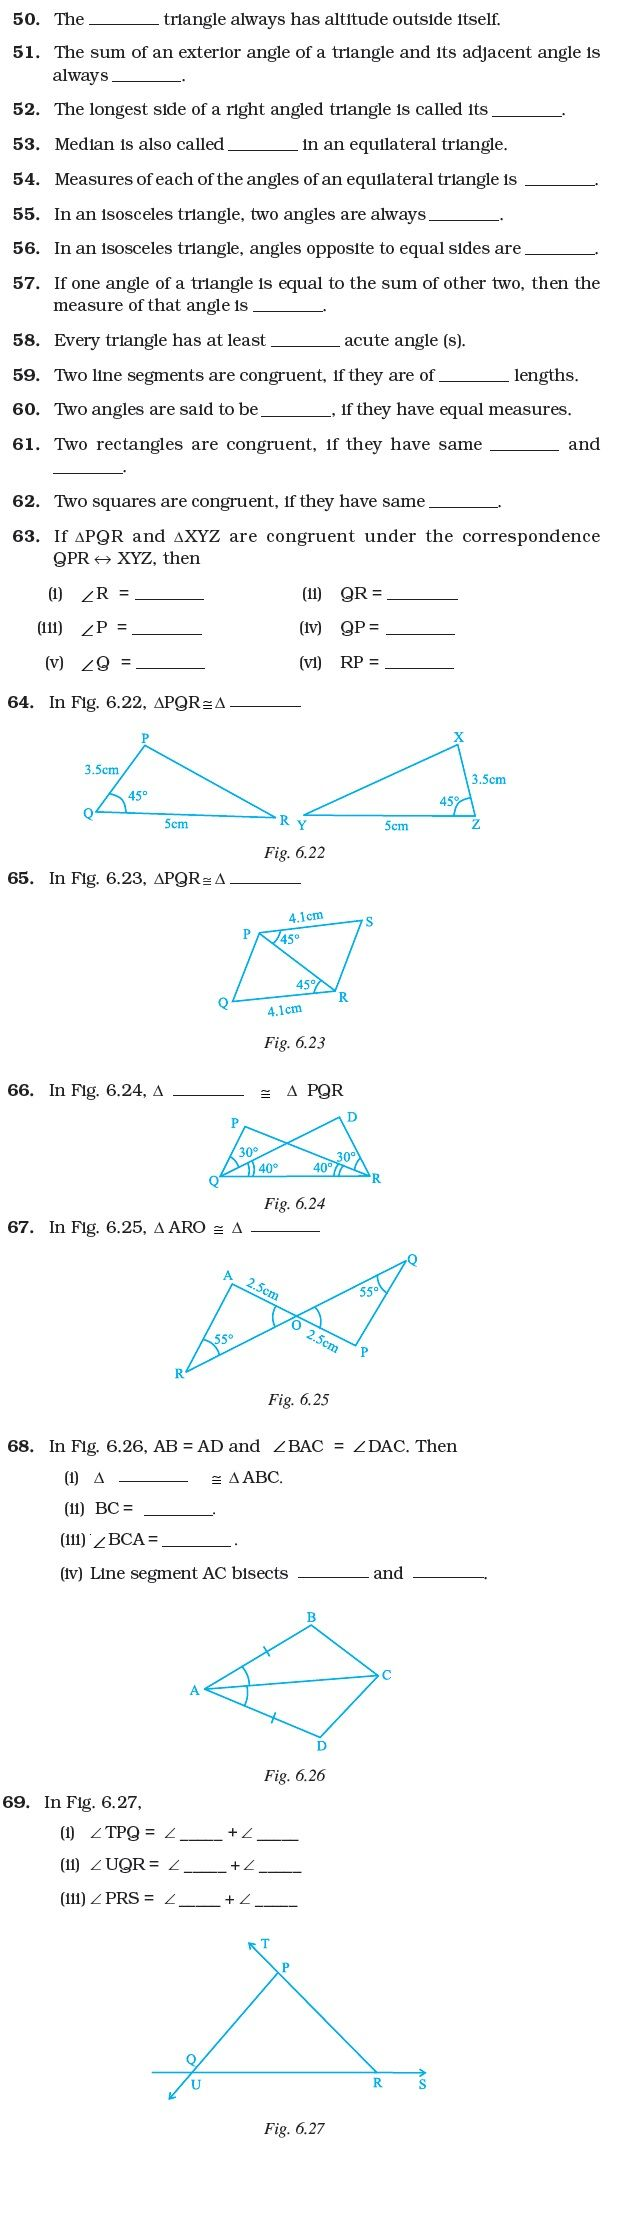 Class 7 Important Questions For Maths Triangles Math This Or That Questions Math Games